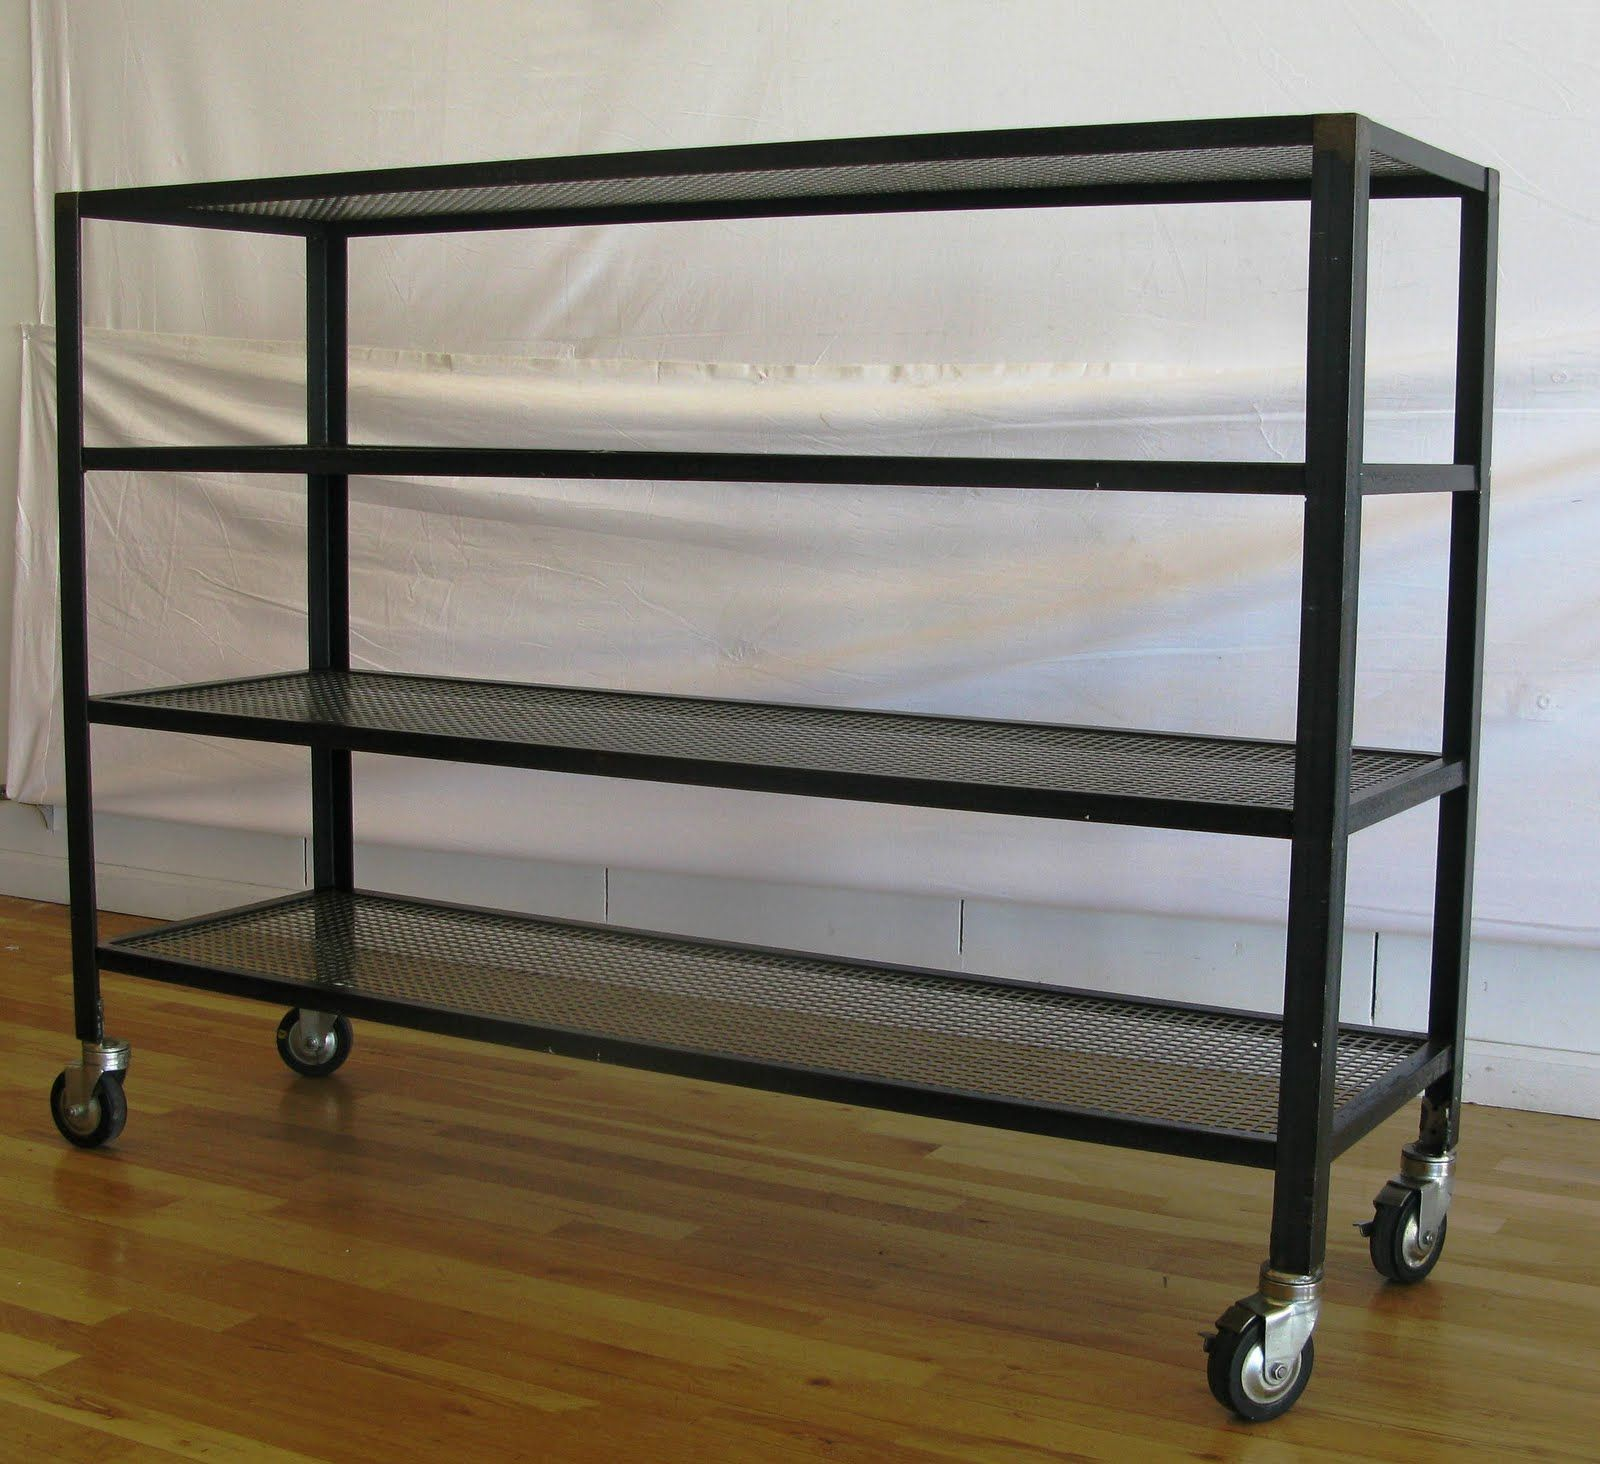 Metal Shelves On Casters For Bat Breezeway And Garage